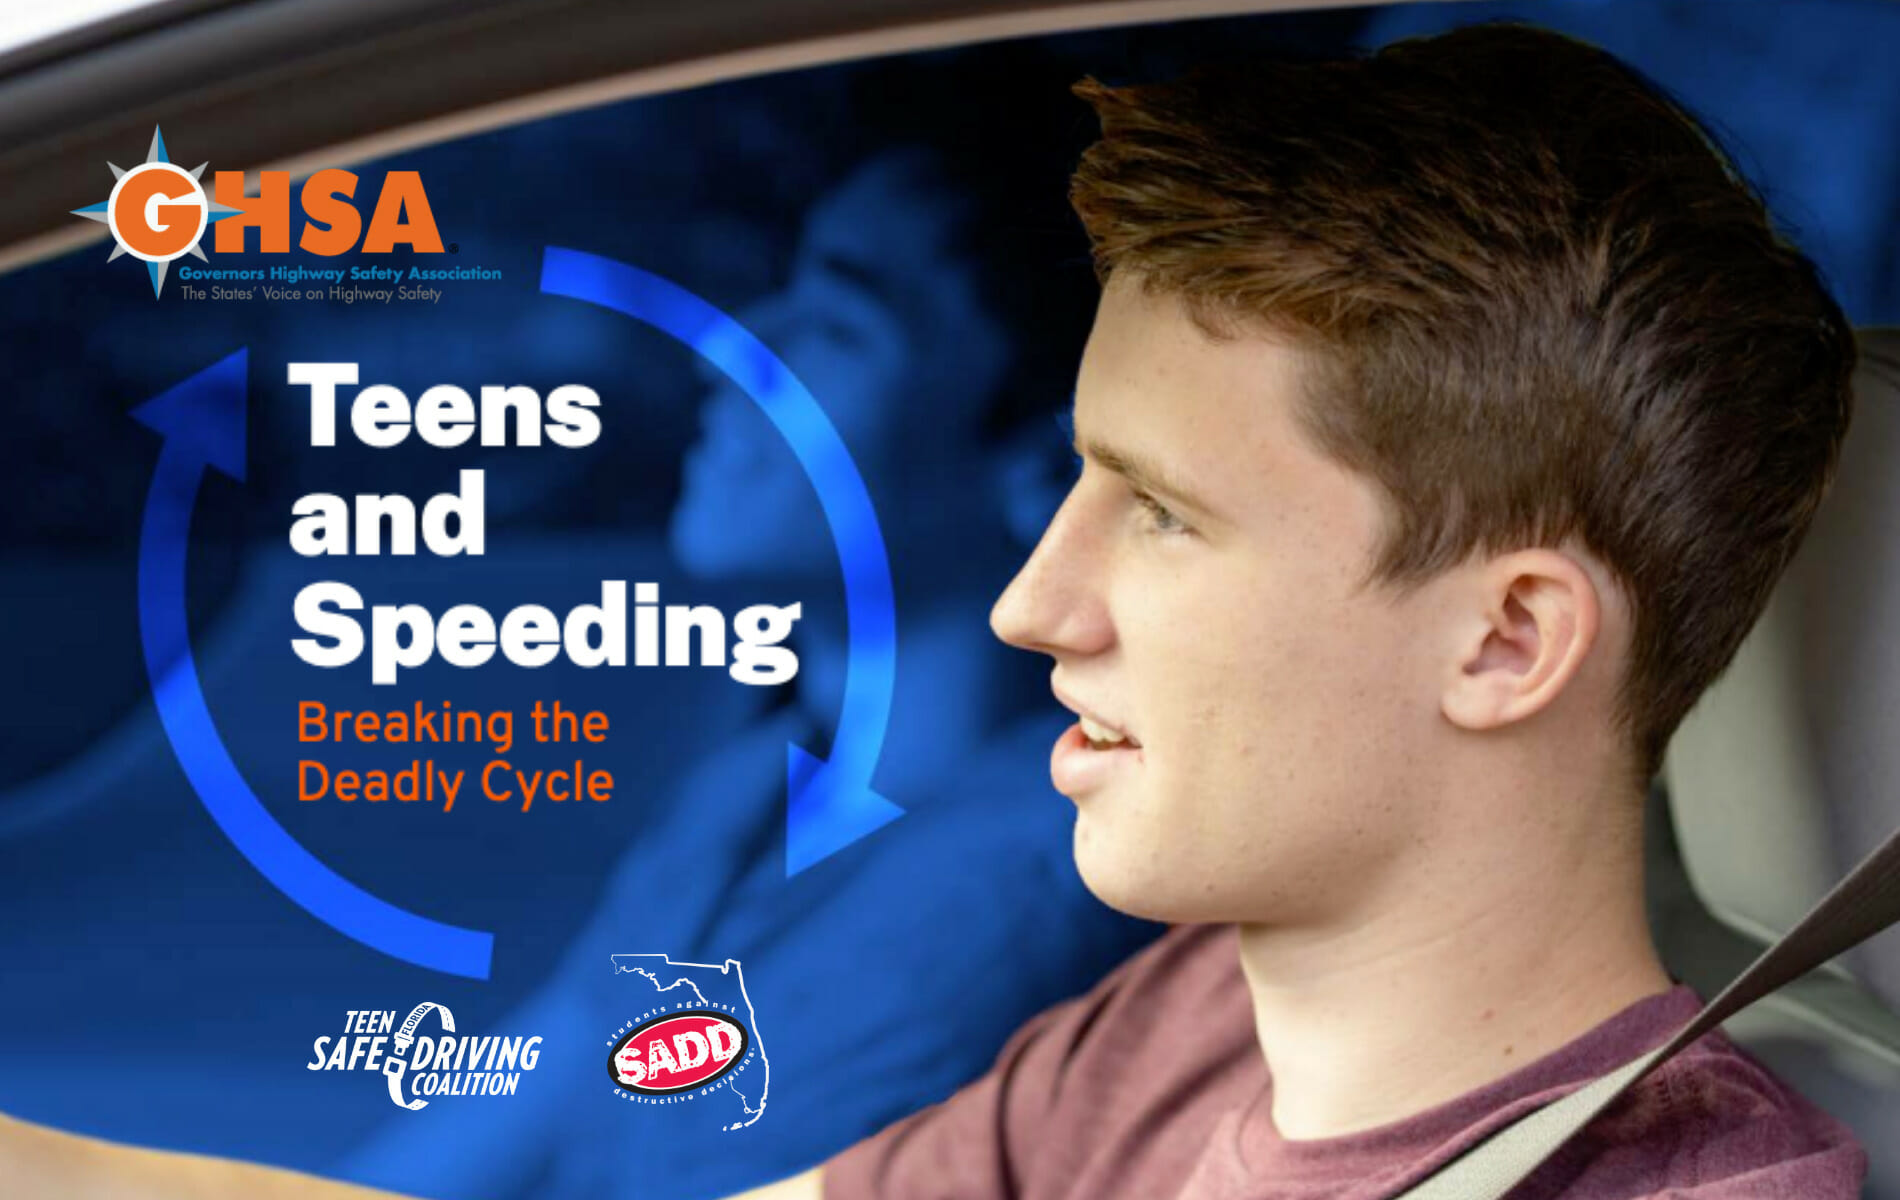 Teens and Speeding: Breaking the Deadly Cycle